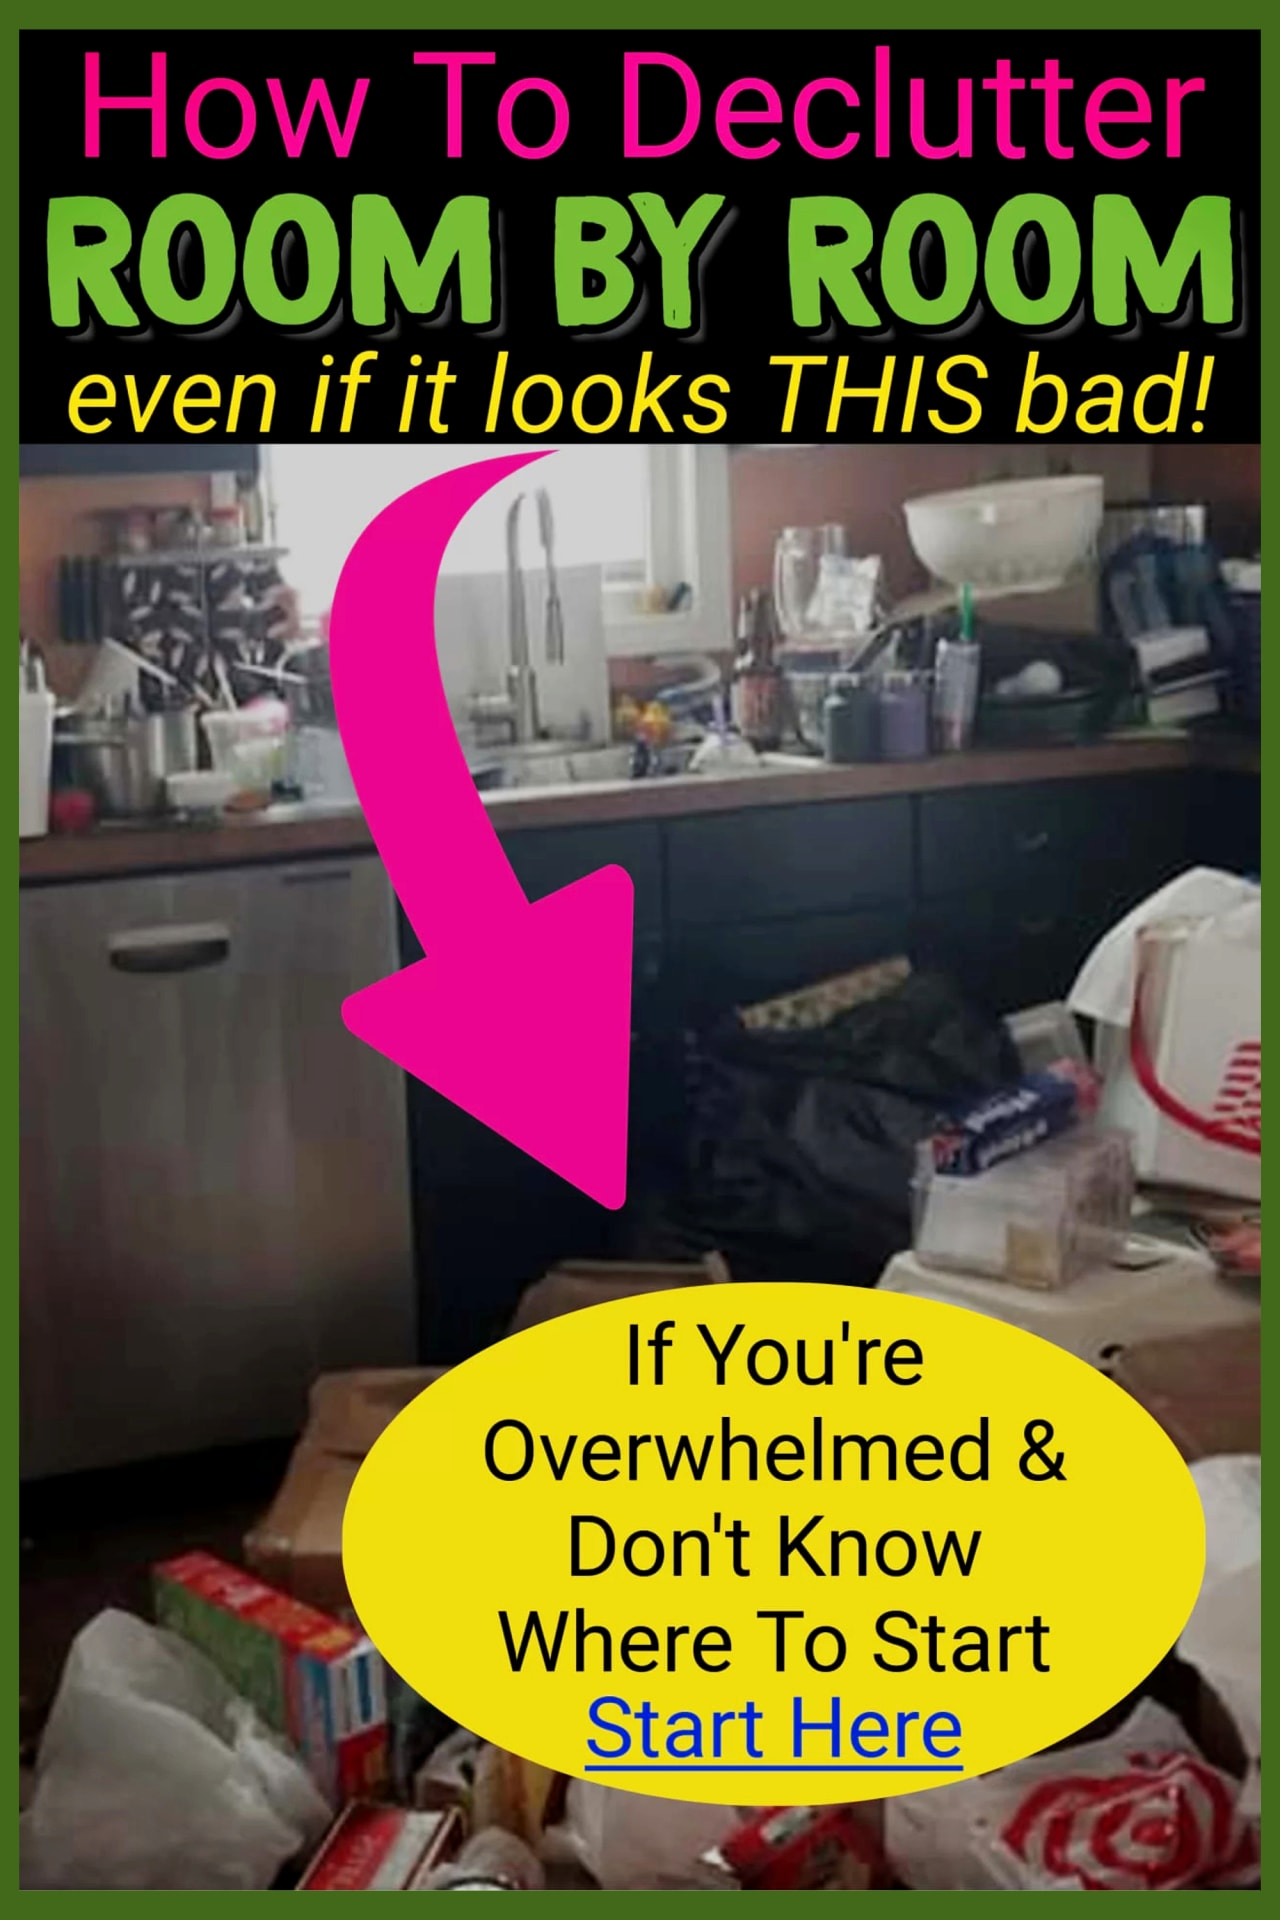 Declutter kitchen clutter and every room in your home - how to declutter and organized if feeling overwhelmed by clutter - kitchen clutter solutions